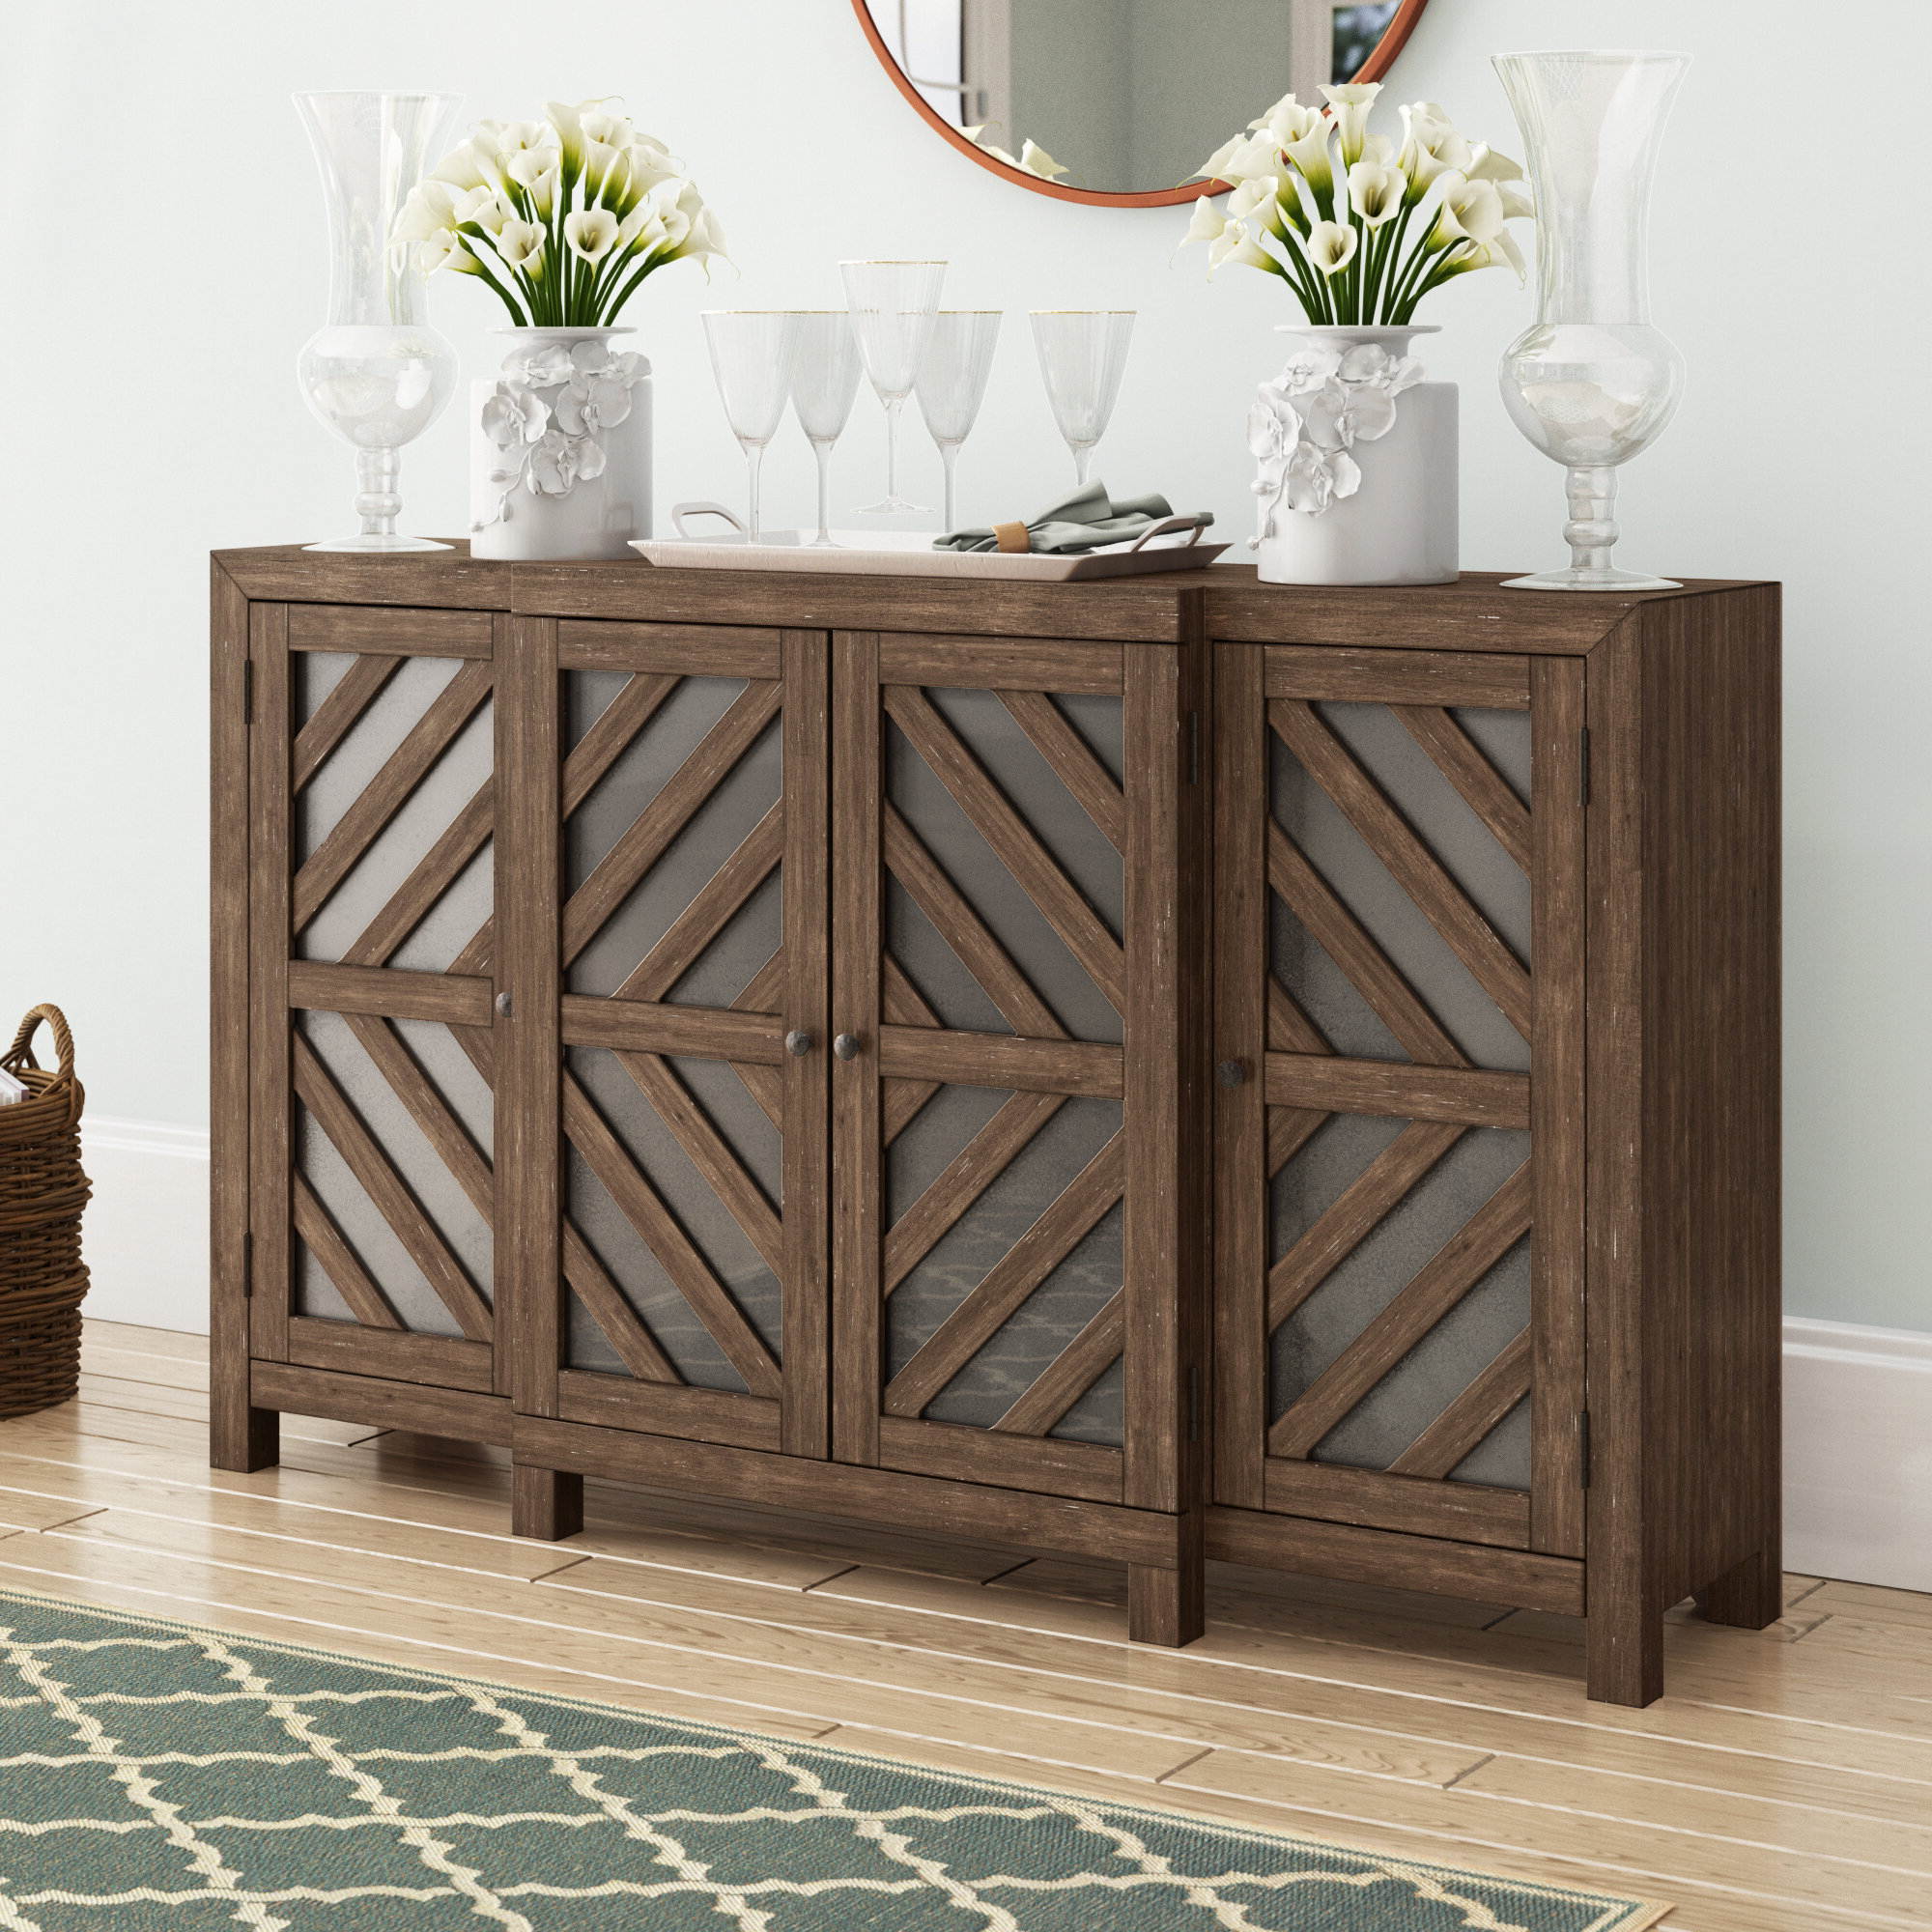 Wayfair Intended For Popular Elyza Credenzas (View 15 of 20)